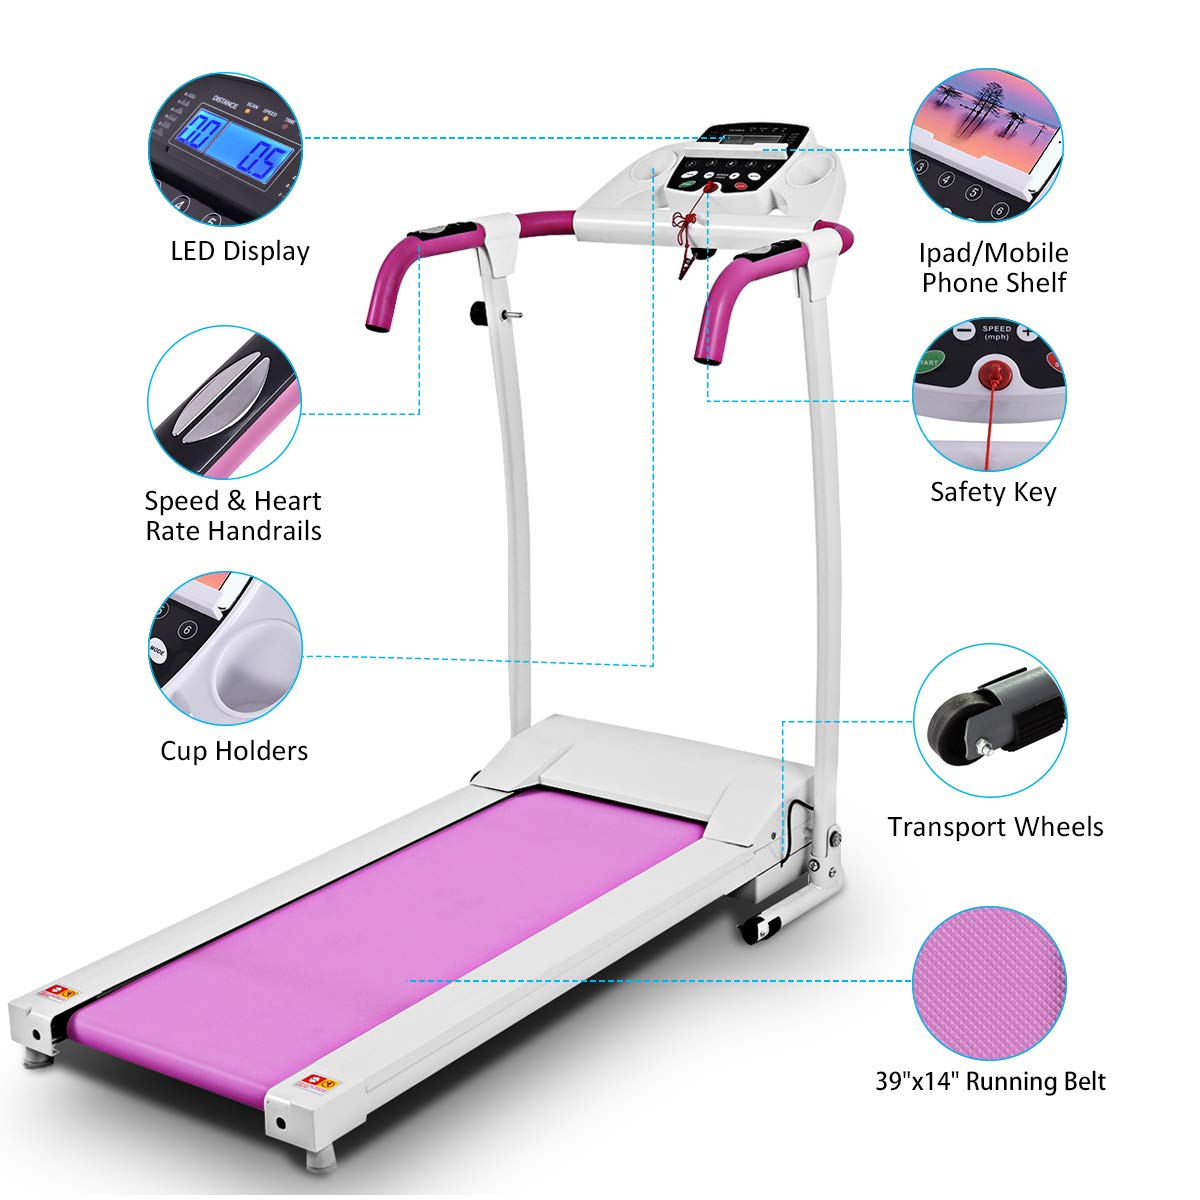 Goplus 800W Folding Treadmill Electric Motorized Power Fitness Running Machine with LED Display and Mobile Phone Holder Perfect for Home Use (Pink) by Goplus (Image #2)